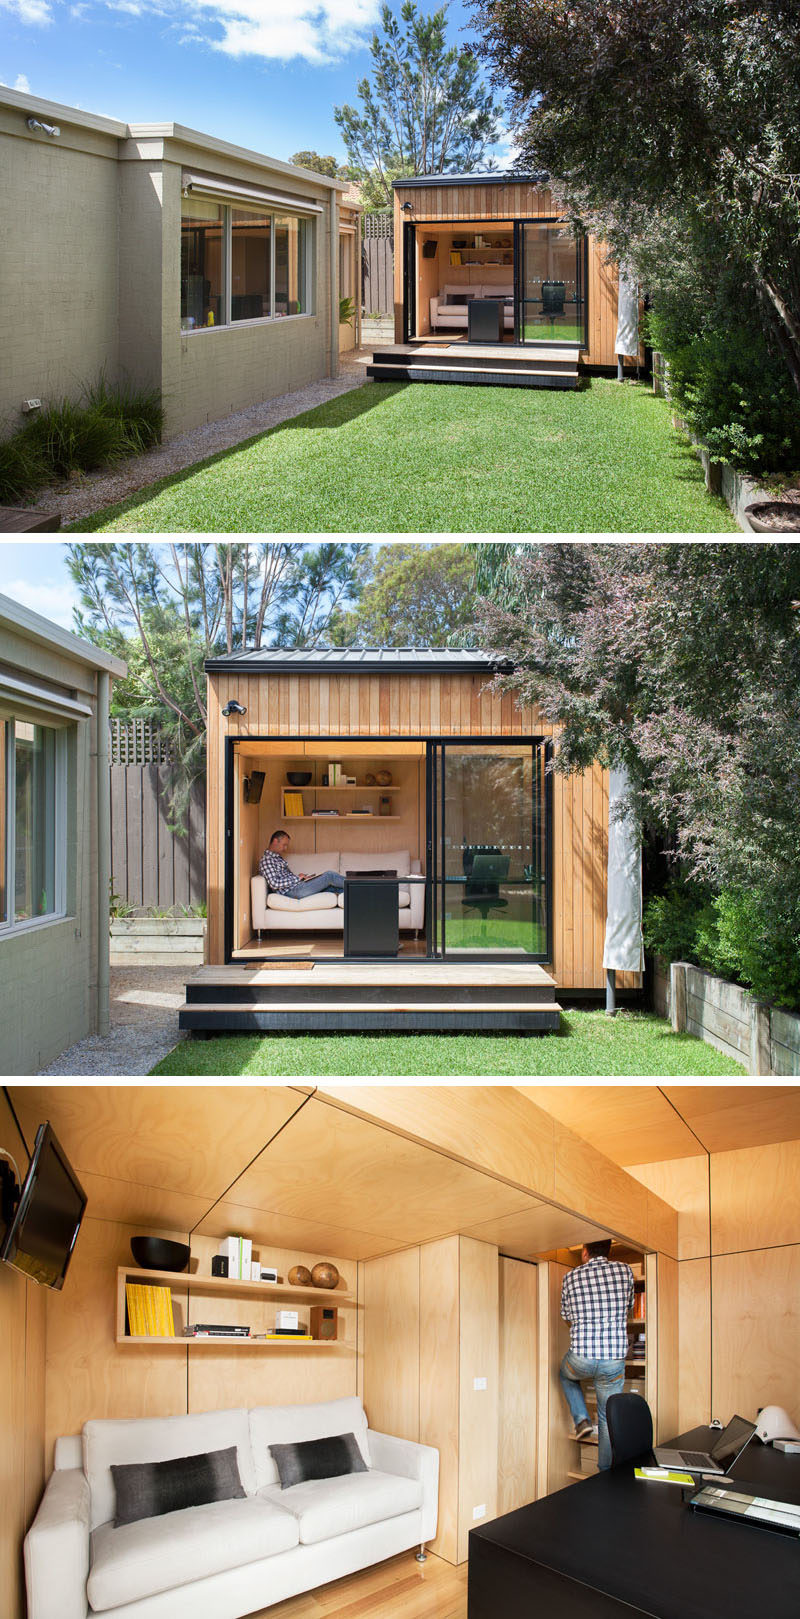 Bon This Small Backyard Studio Has Been Carefully Designed To Accommodate A  Couch, A Work Space, And A Lofted Sleeping Area To Create The Ultimate  Backyard ...